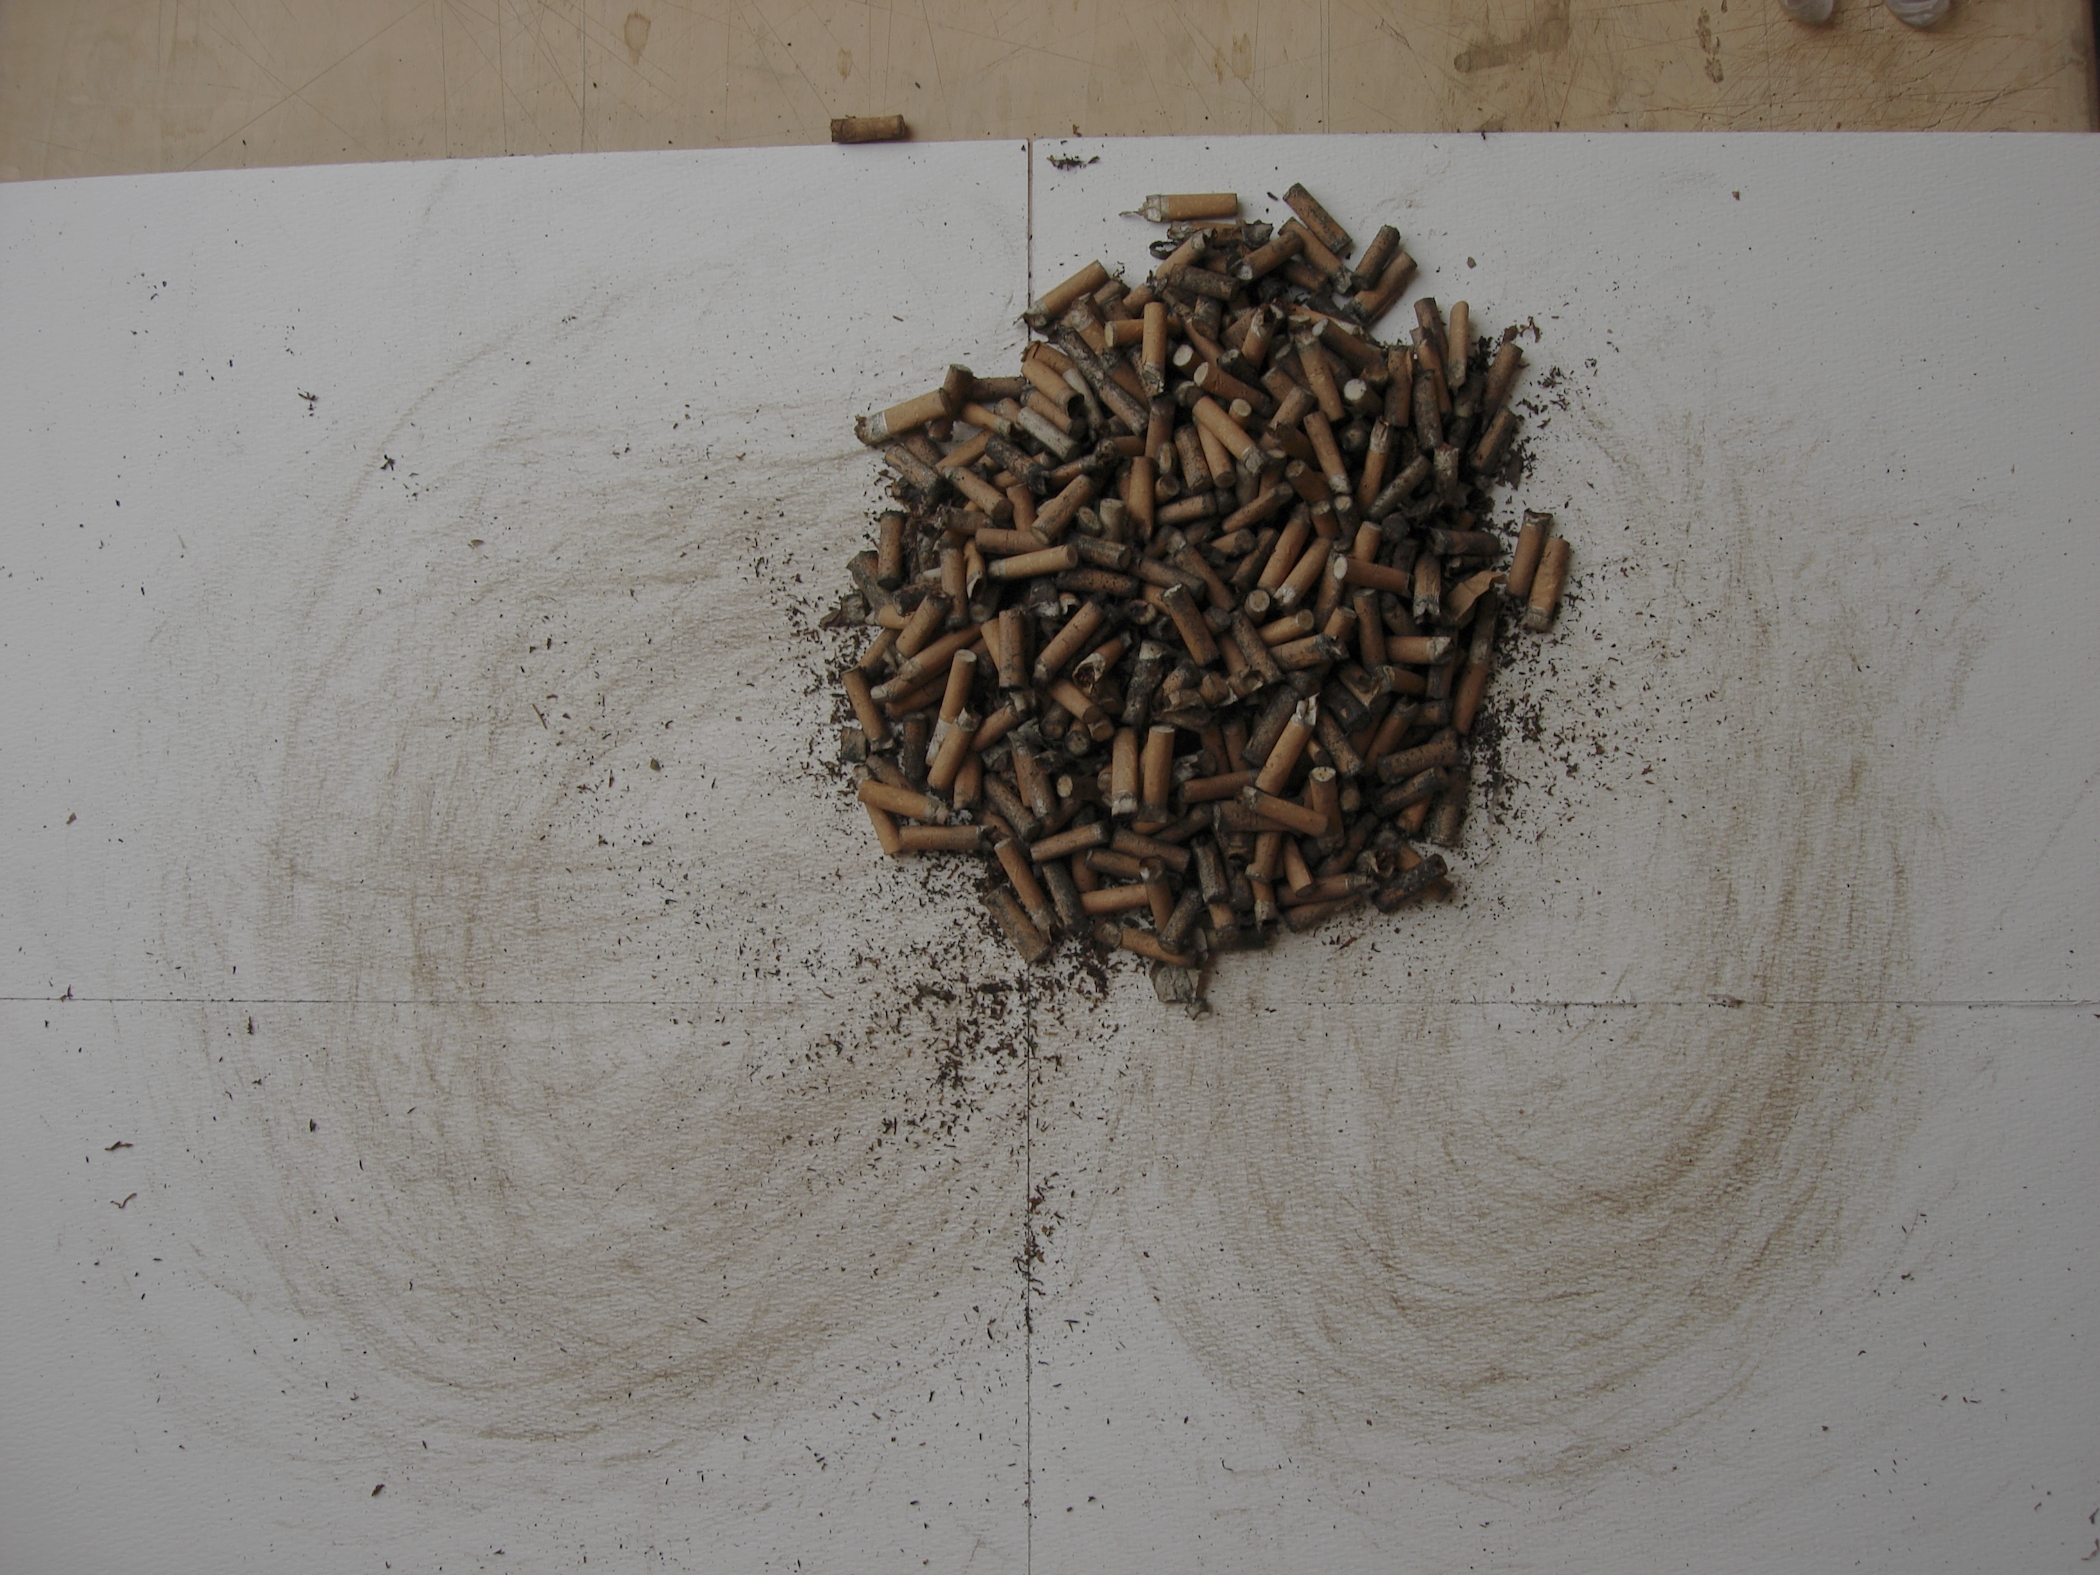 Drawing / Shelling (with installation note)